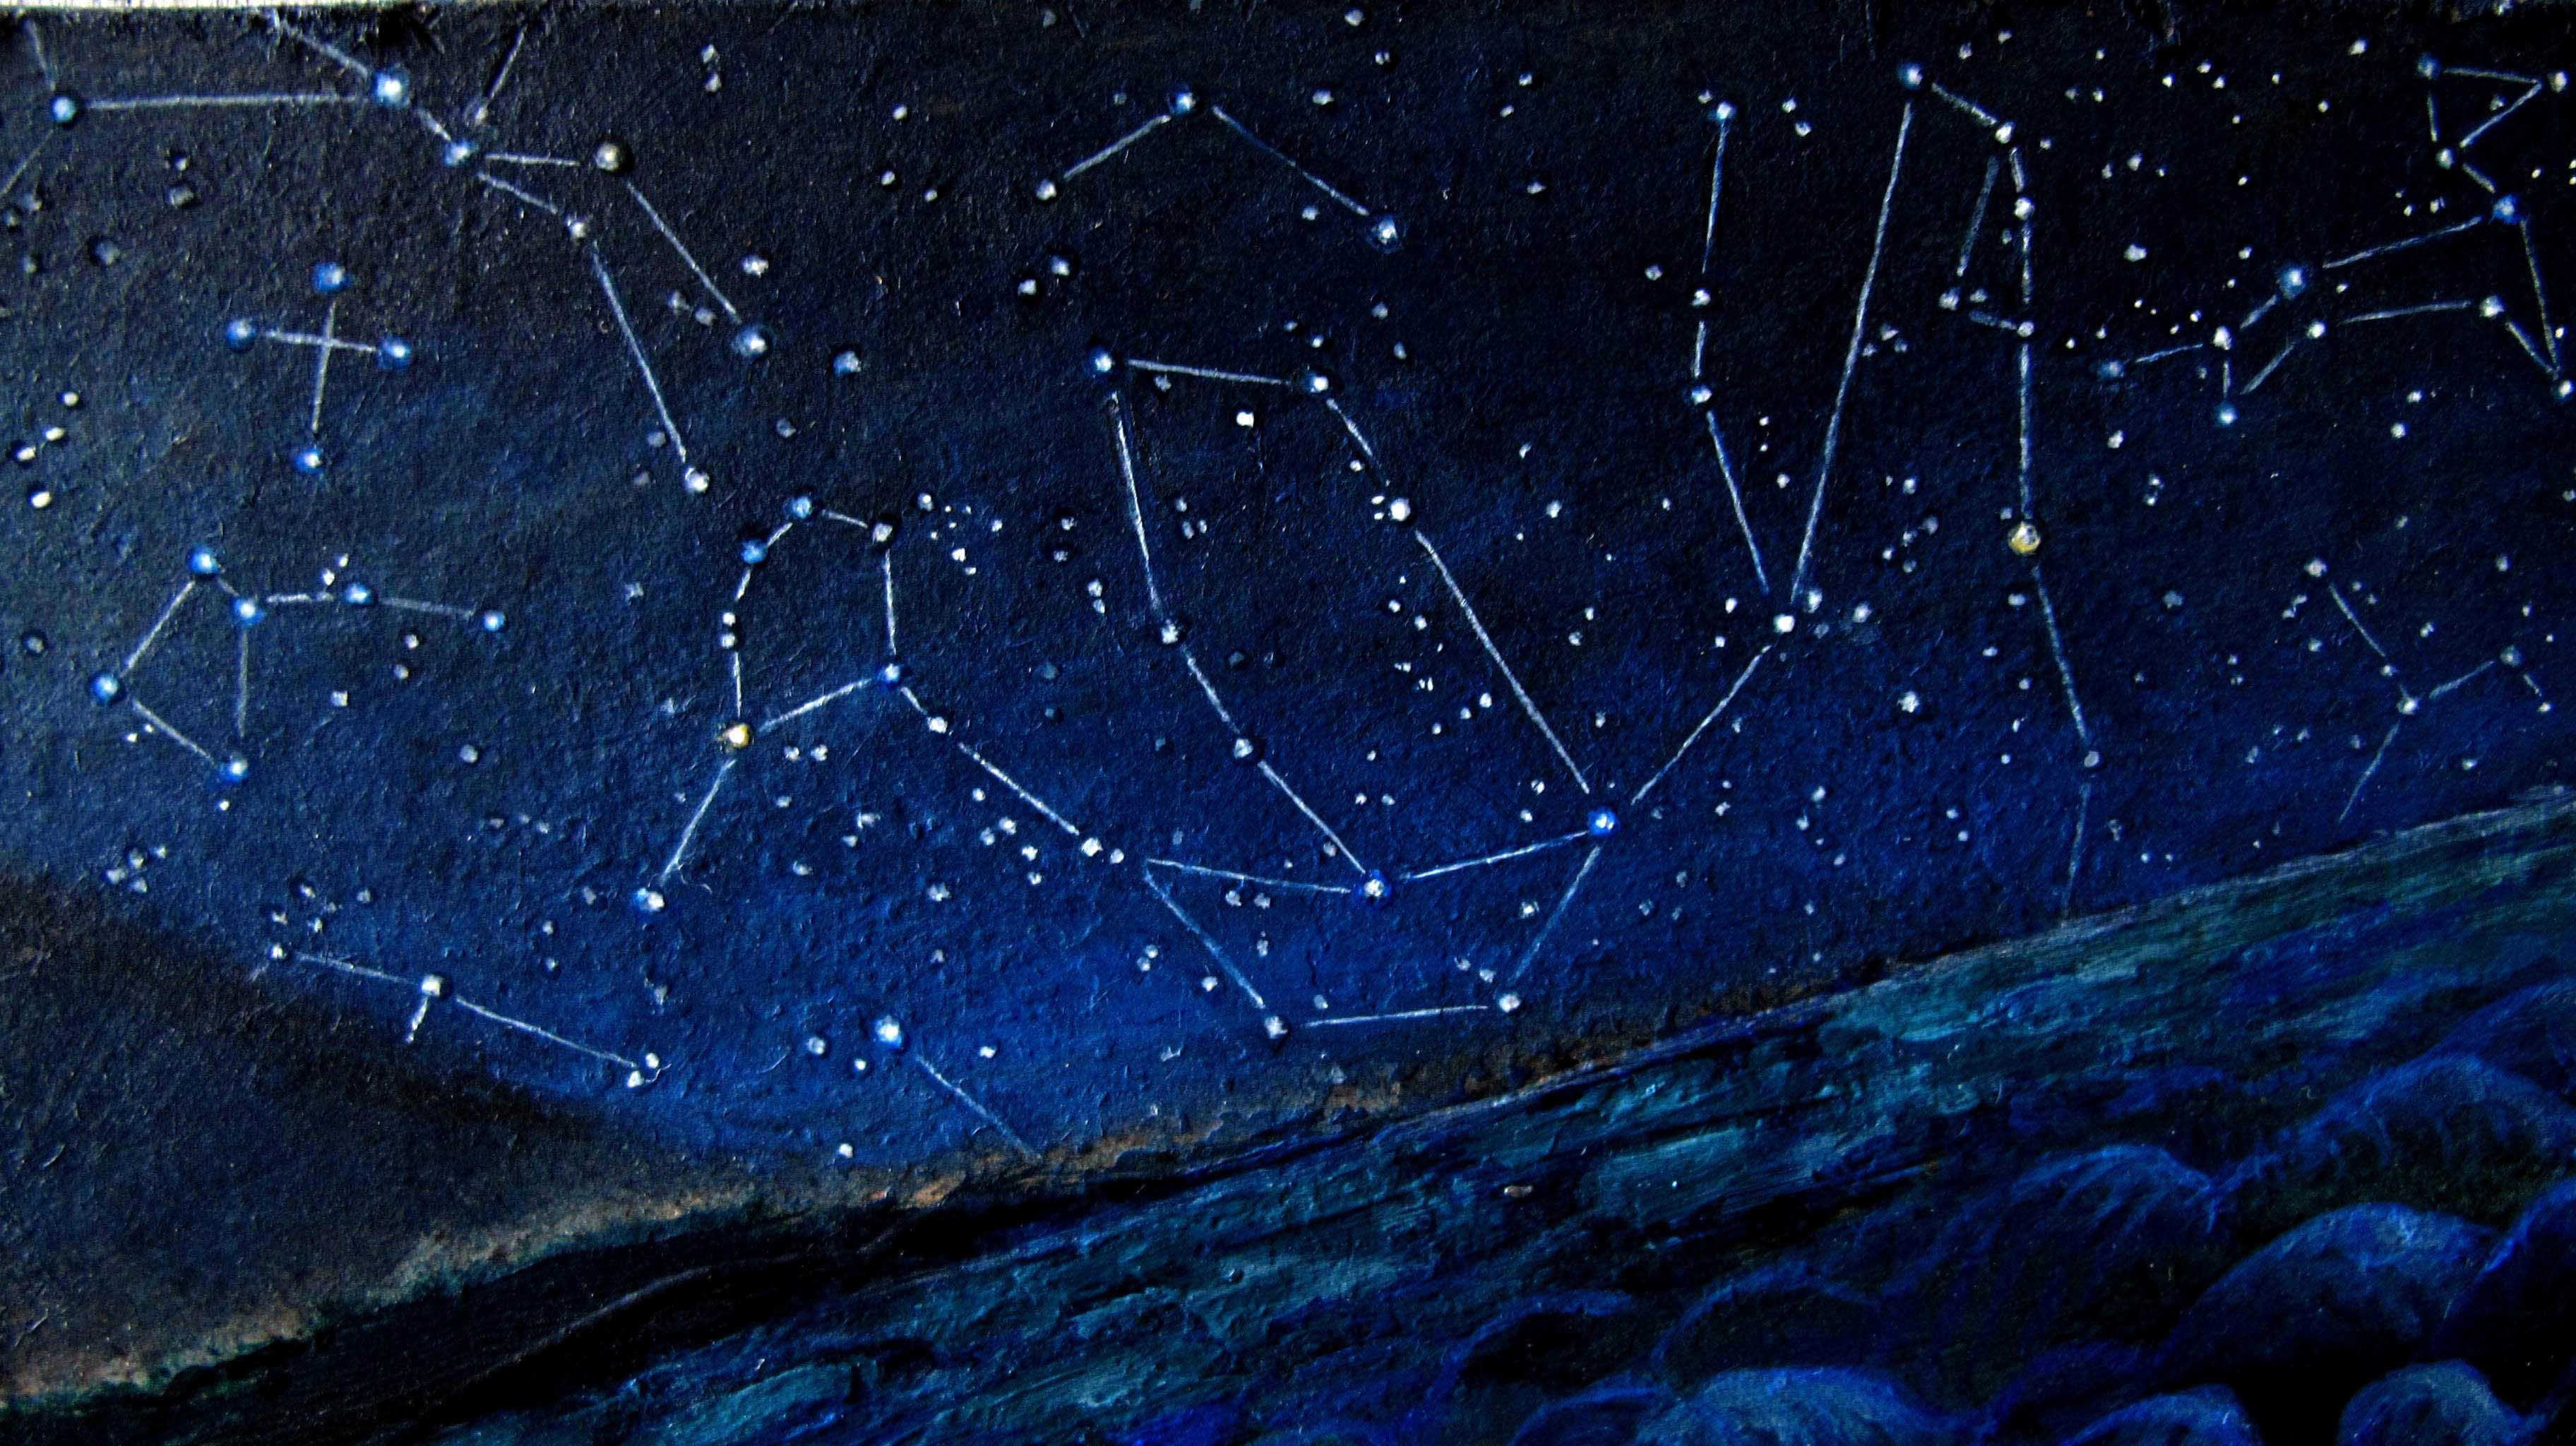 Res: 3648x2048, Gallery for - constellation wallpaper